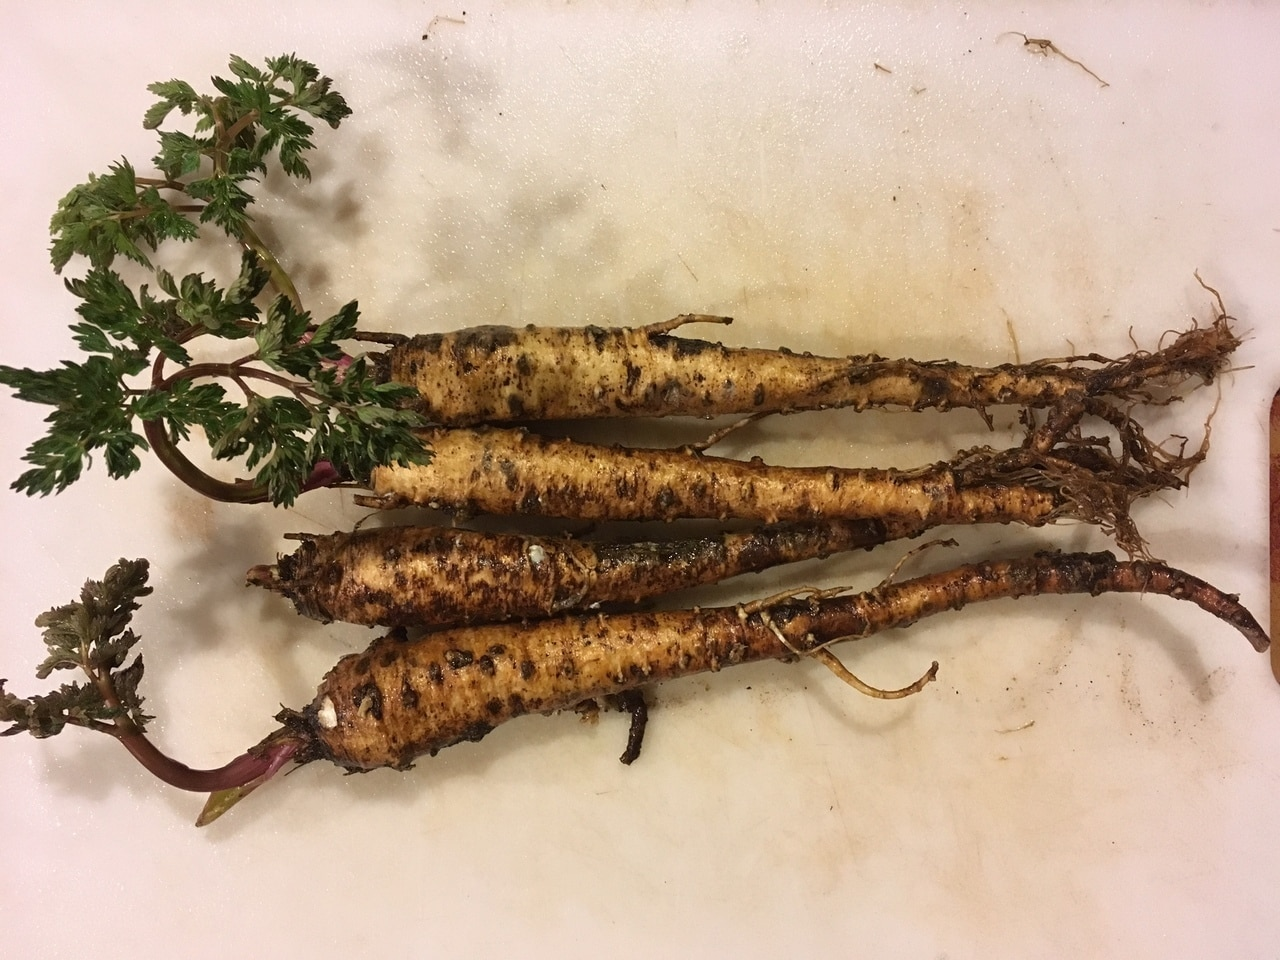 Lomatium dissectum roots ready to be chopped into medicine!